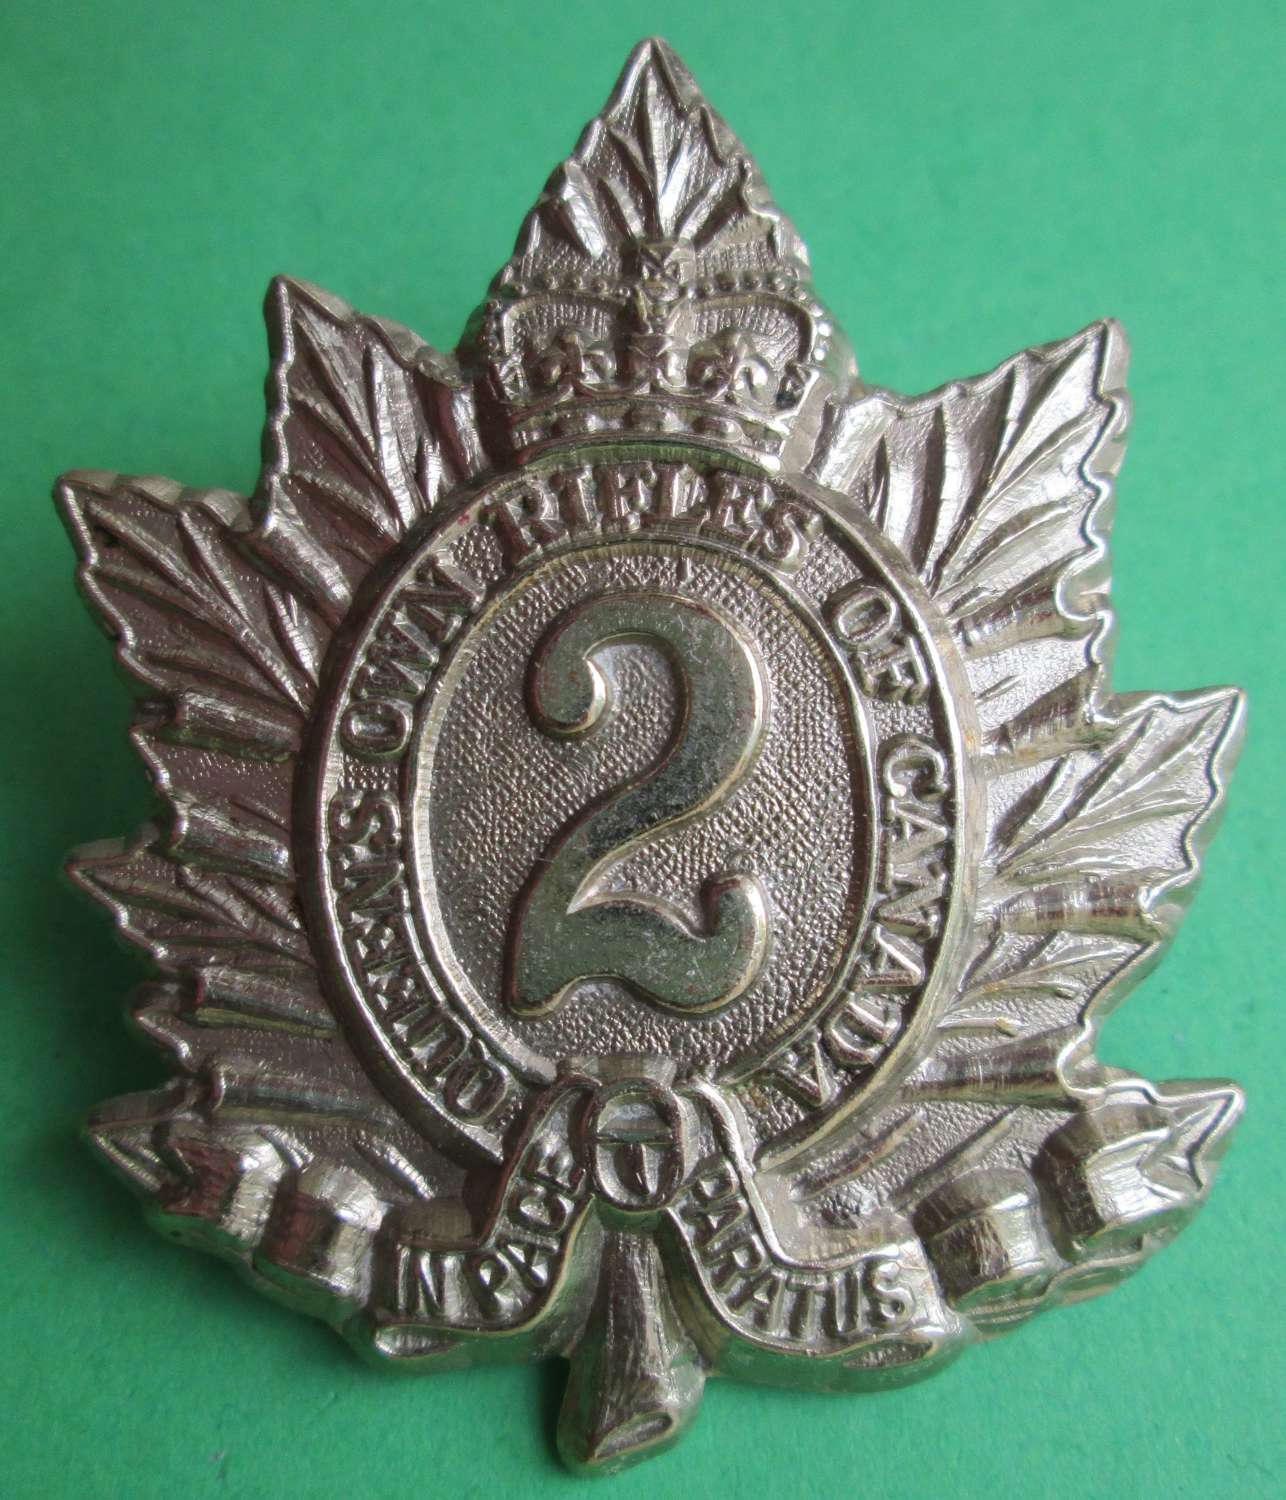 A QUEENS OWN RIFLES OF CANADA BADGE